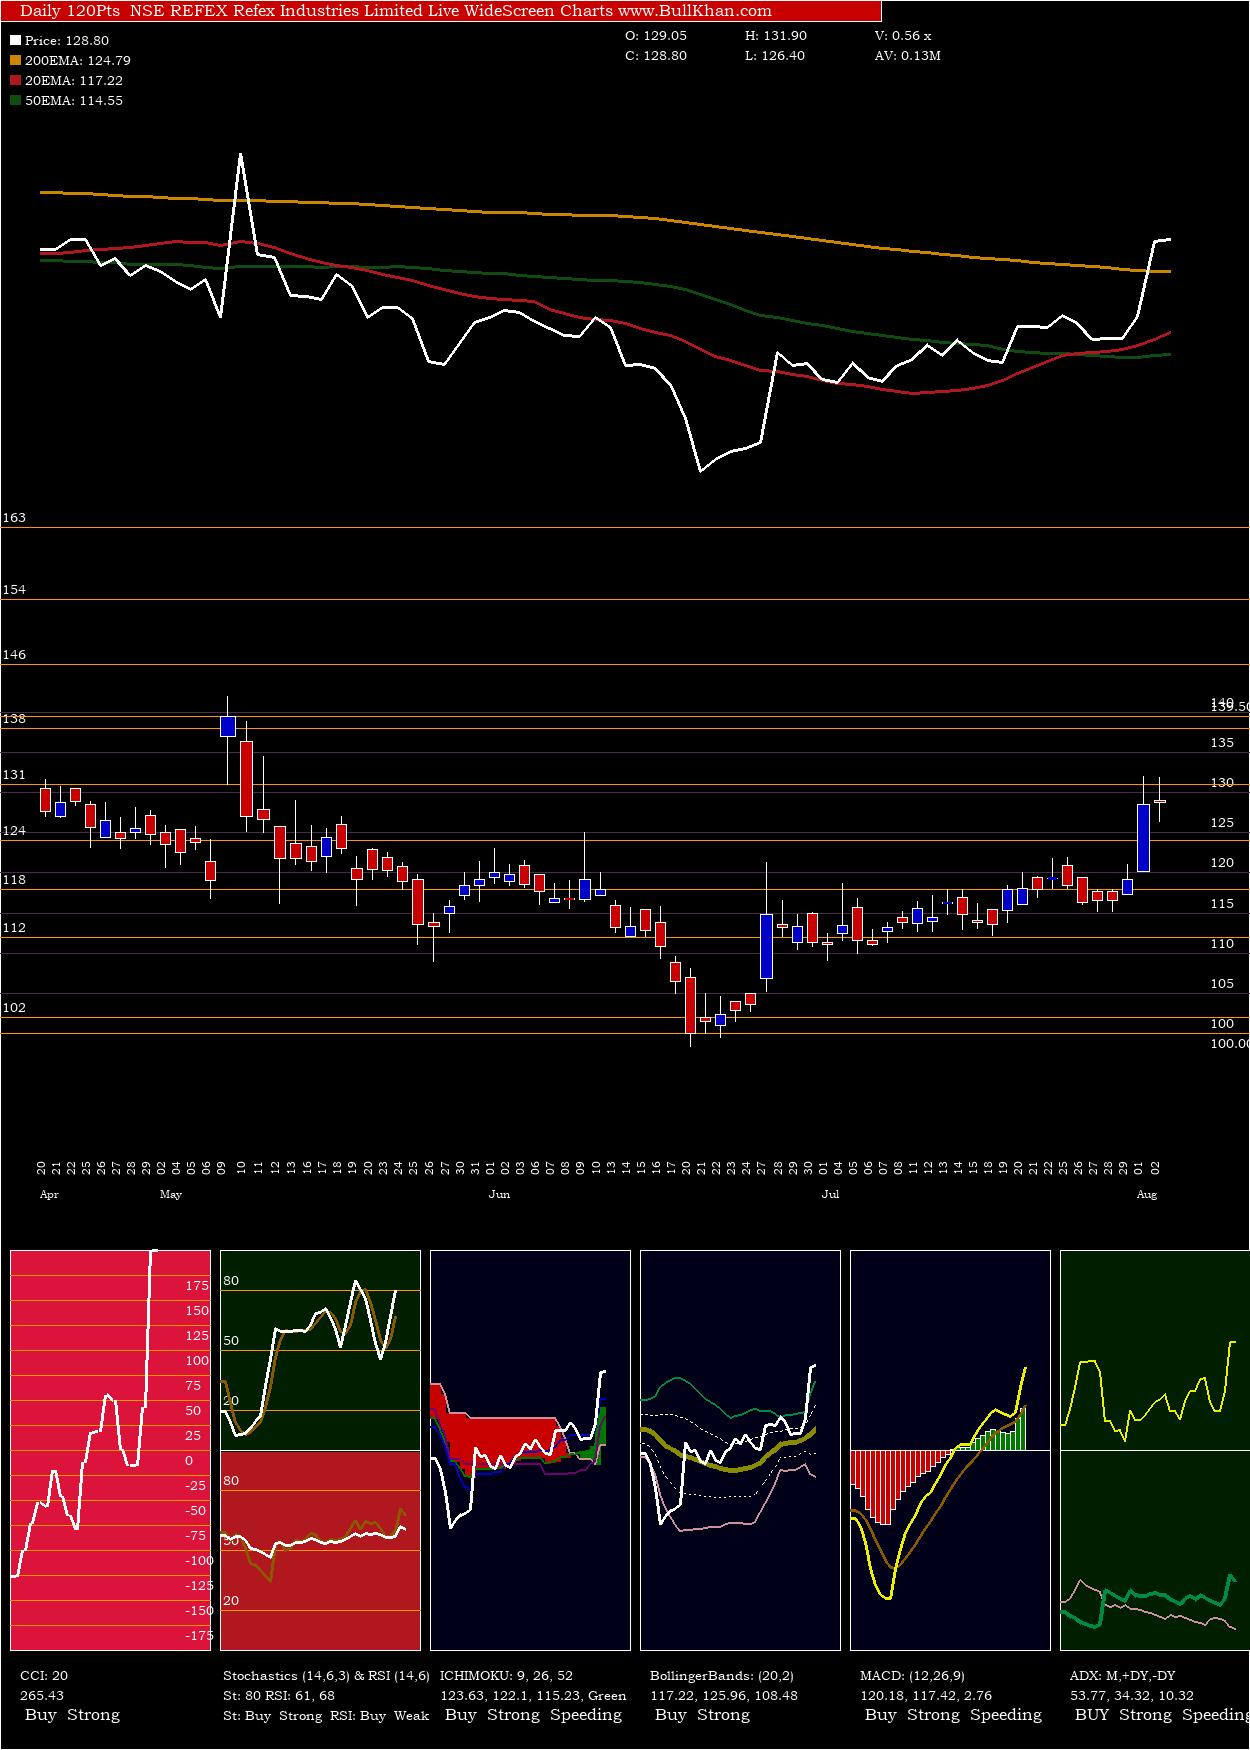 Refex Industries charts and indicators